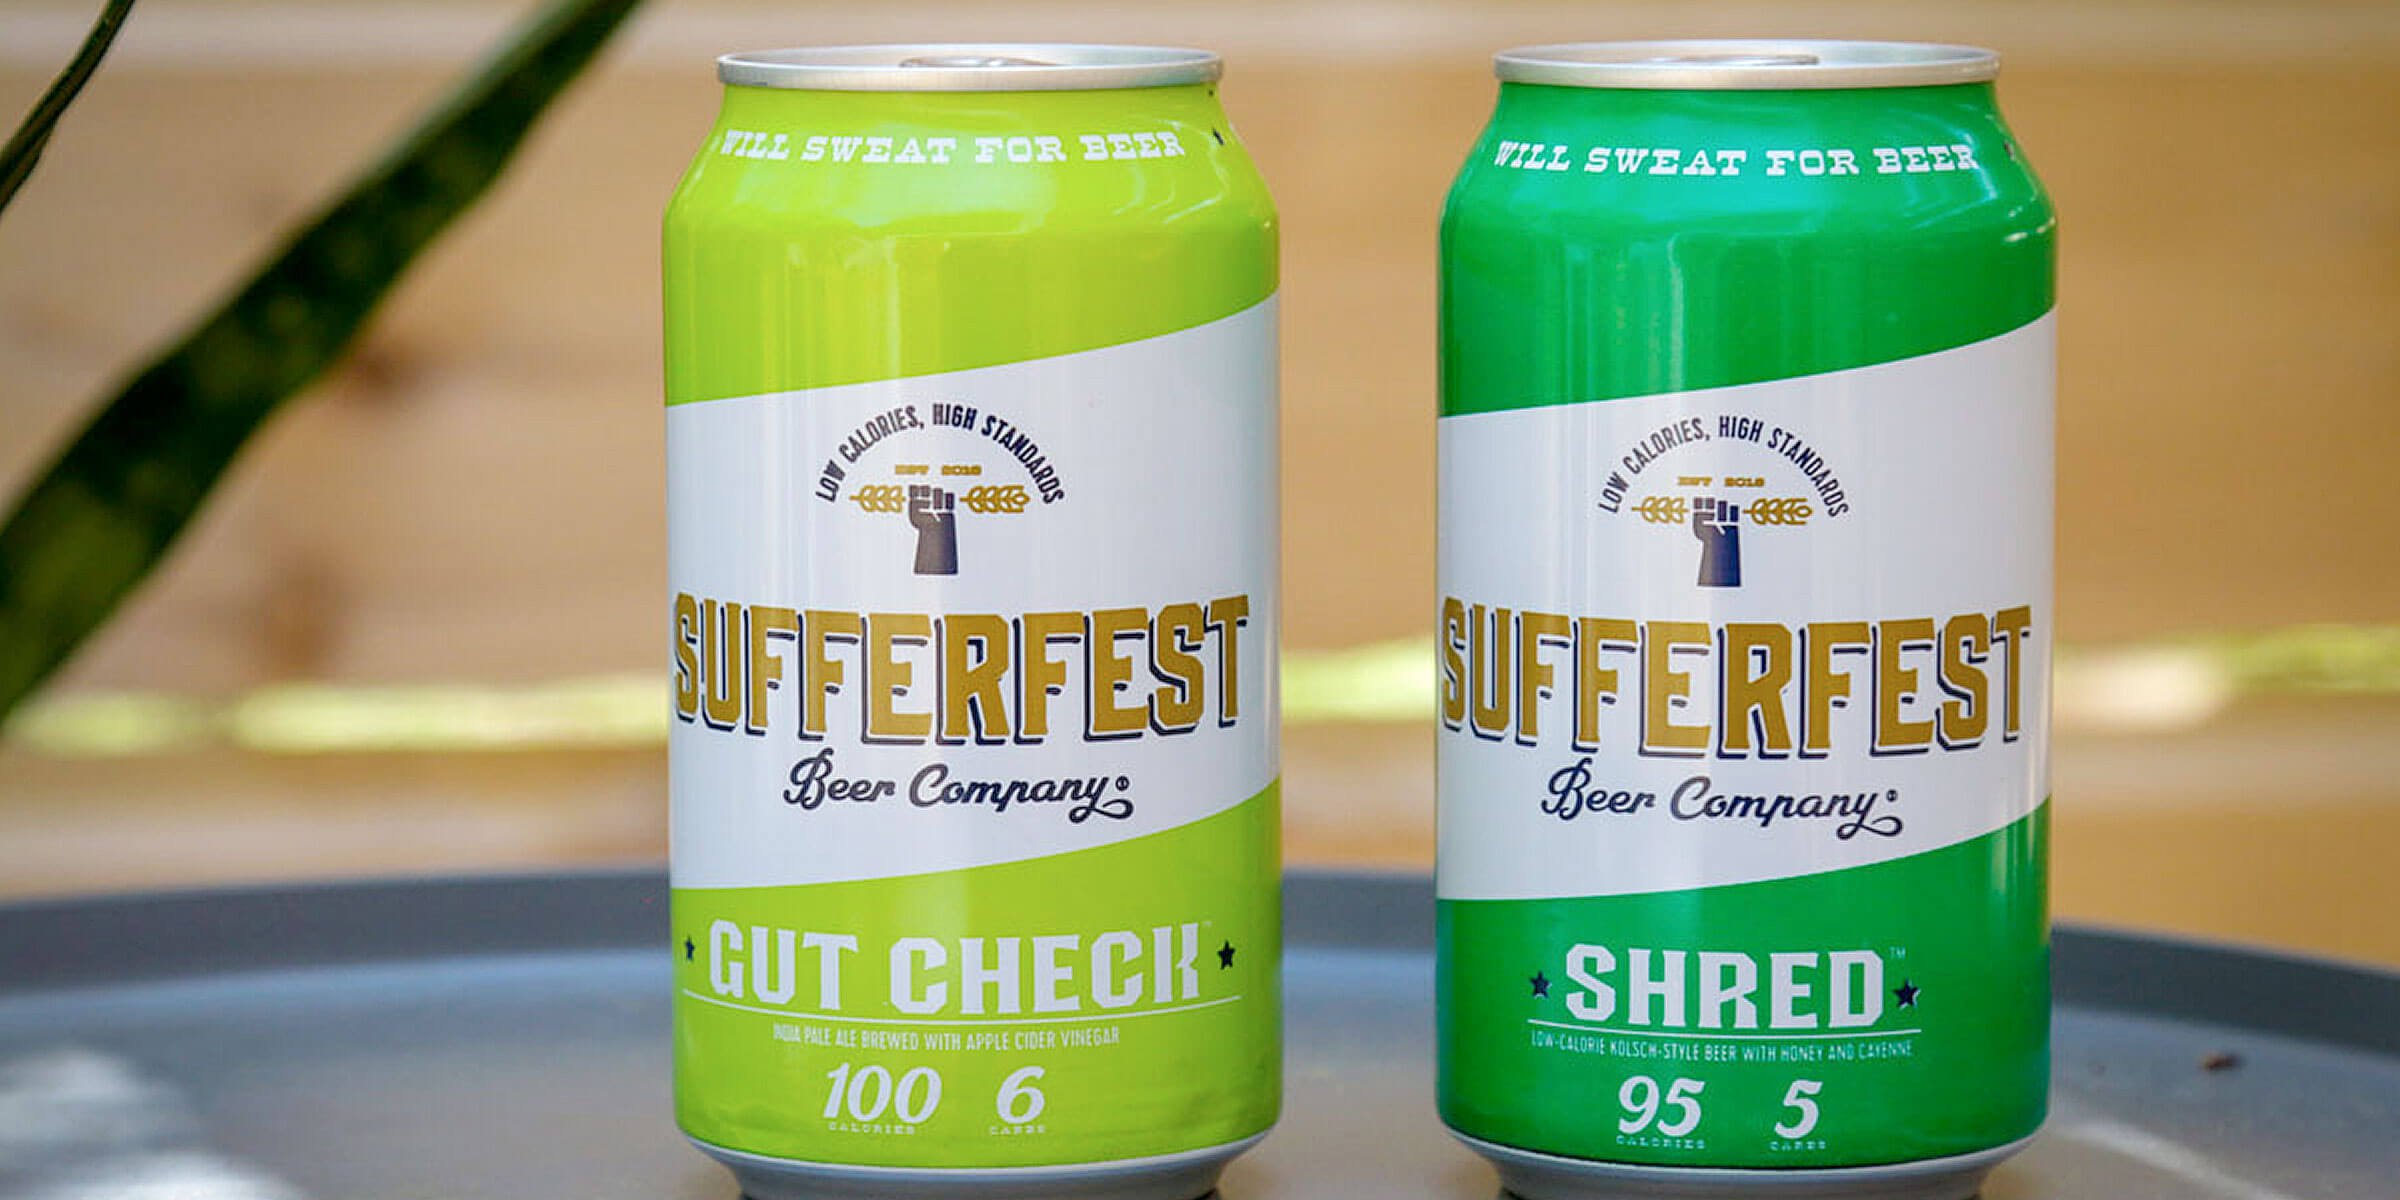 Sufferfest Beer Company introduces two new flavorful and low-calorie beers for the athlete in all of us, the Gut Check IPA and Shred Kolsch.